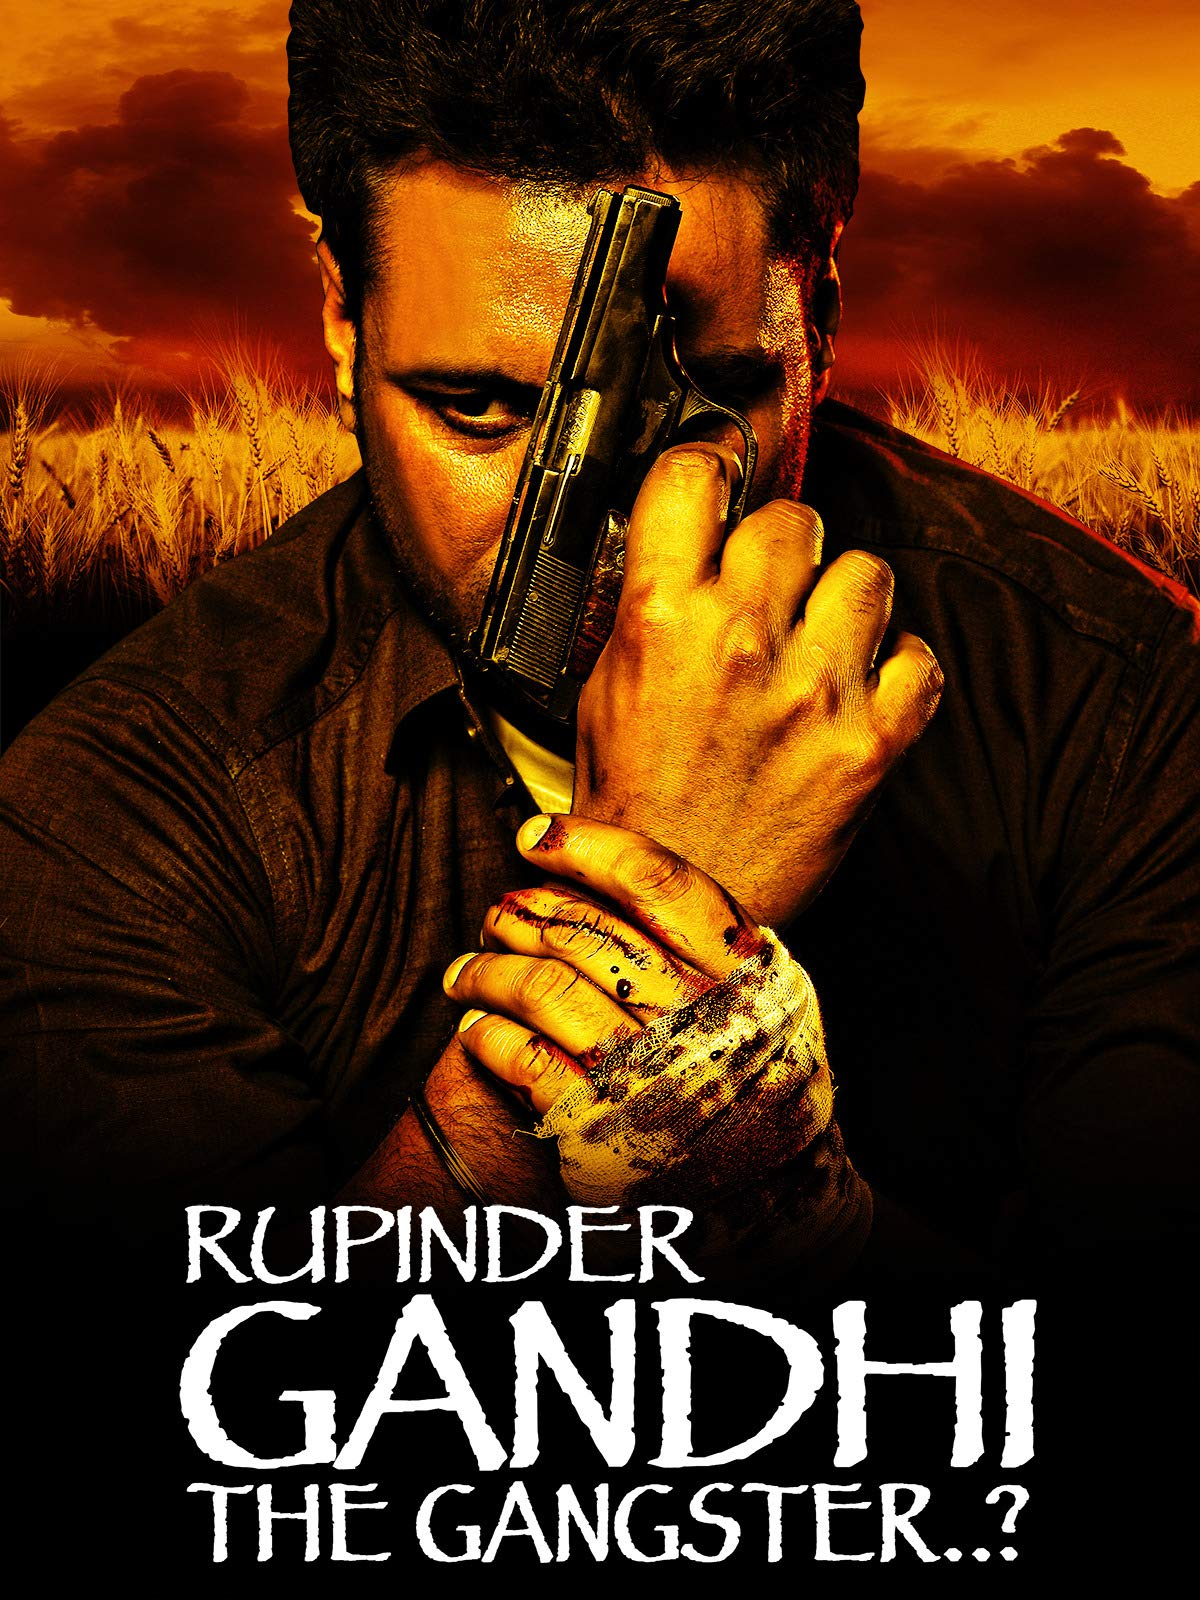 Rupinder Gandhi - The Gangster